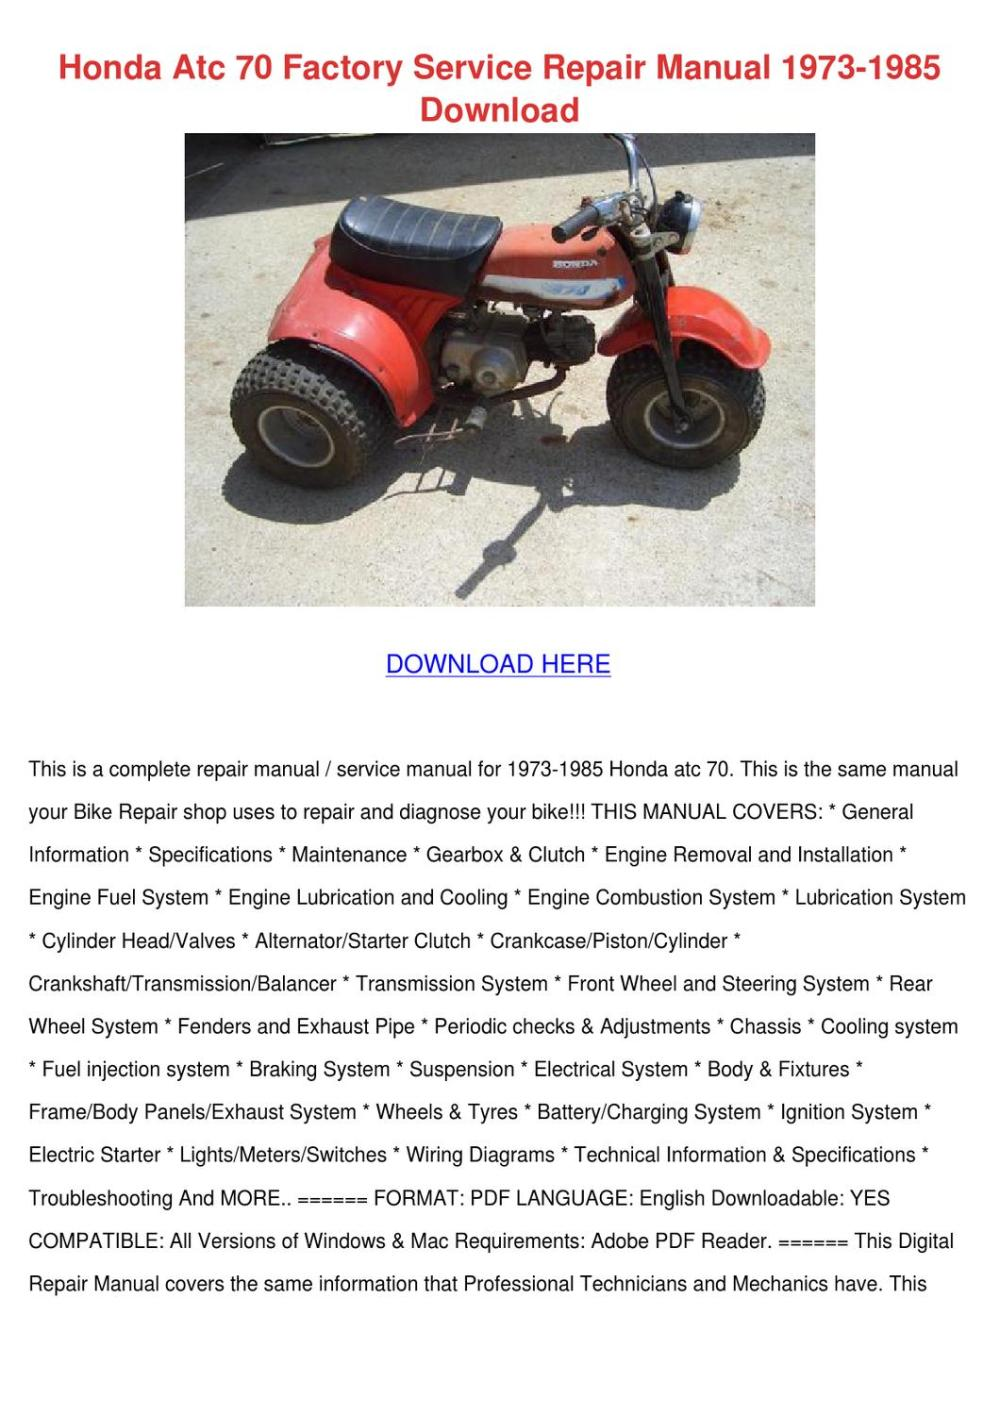 medium resolution of honda atc 70 factory service repair manual 19